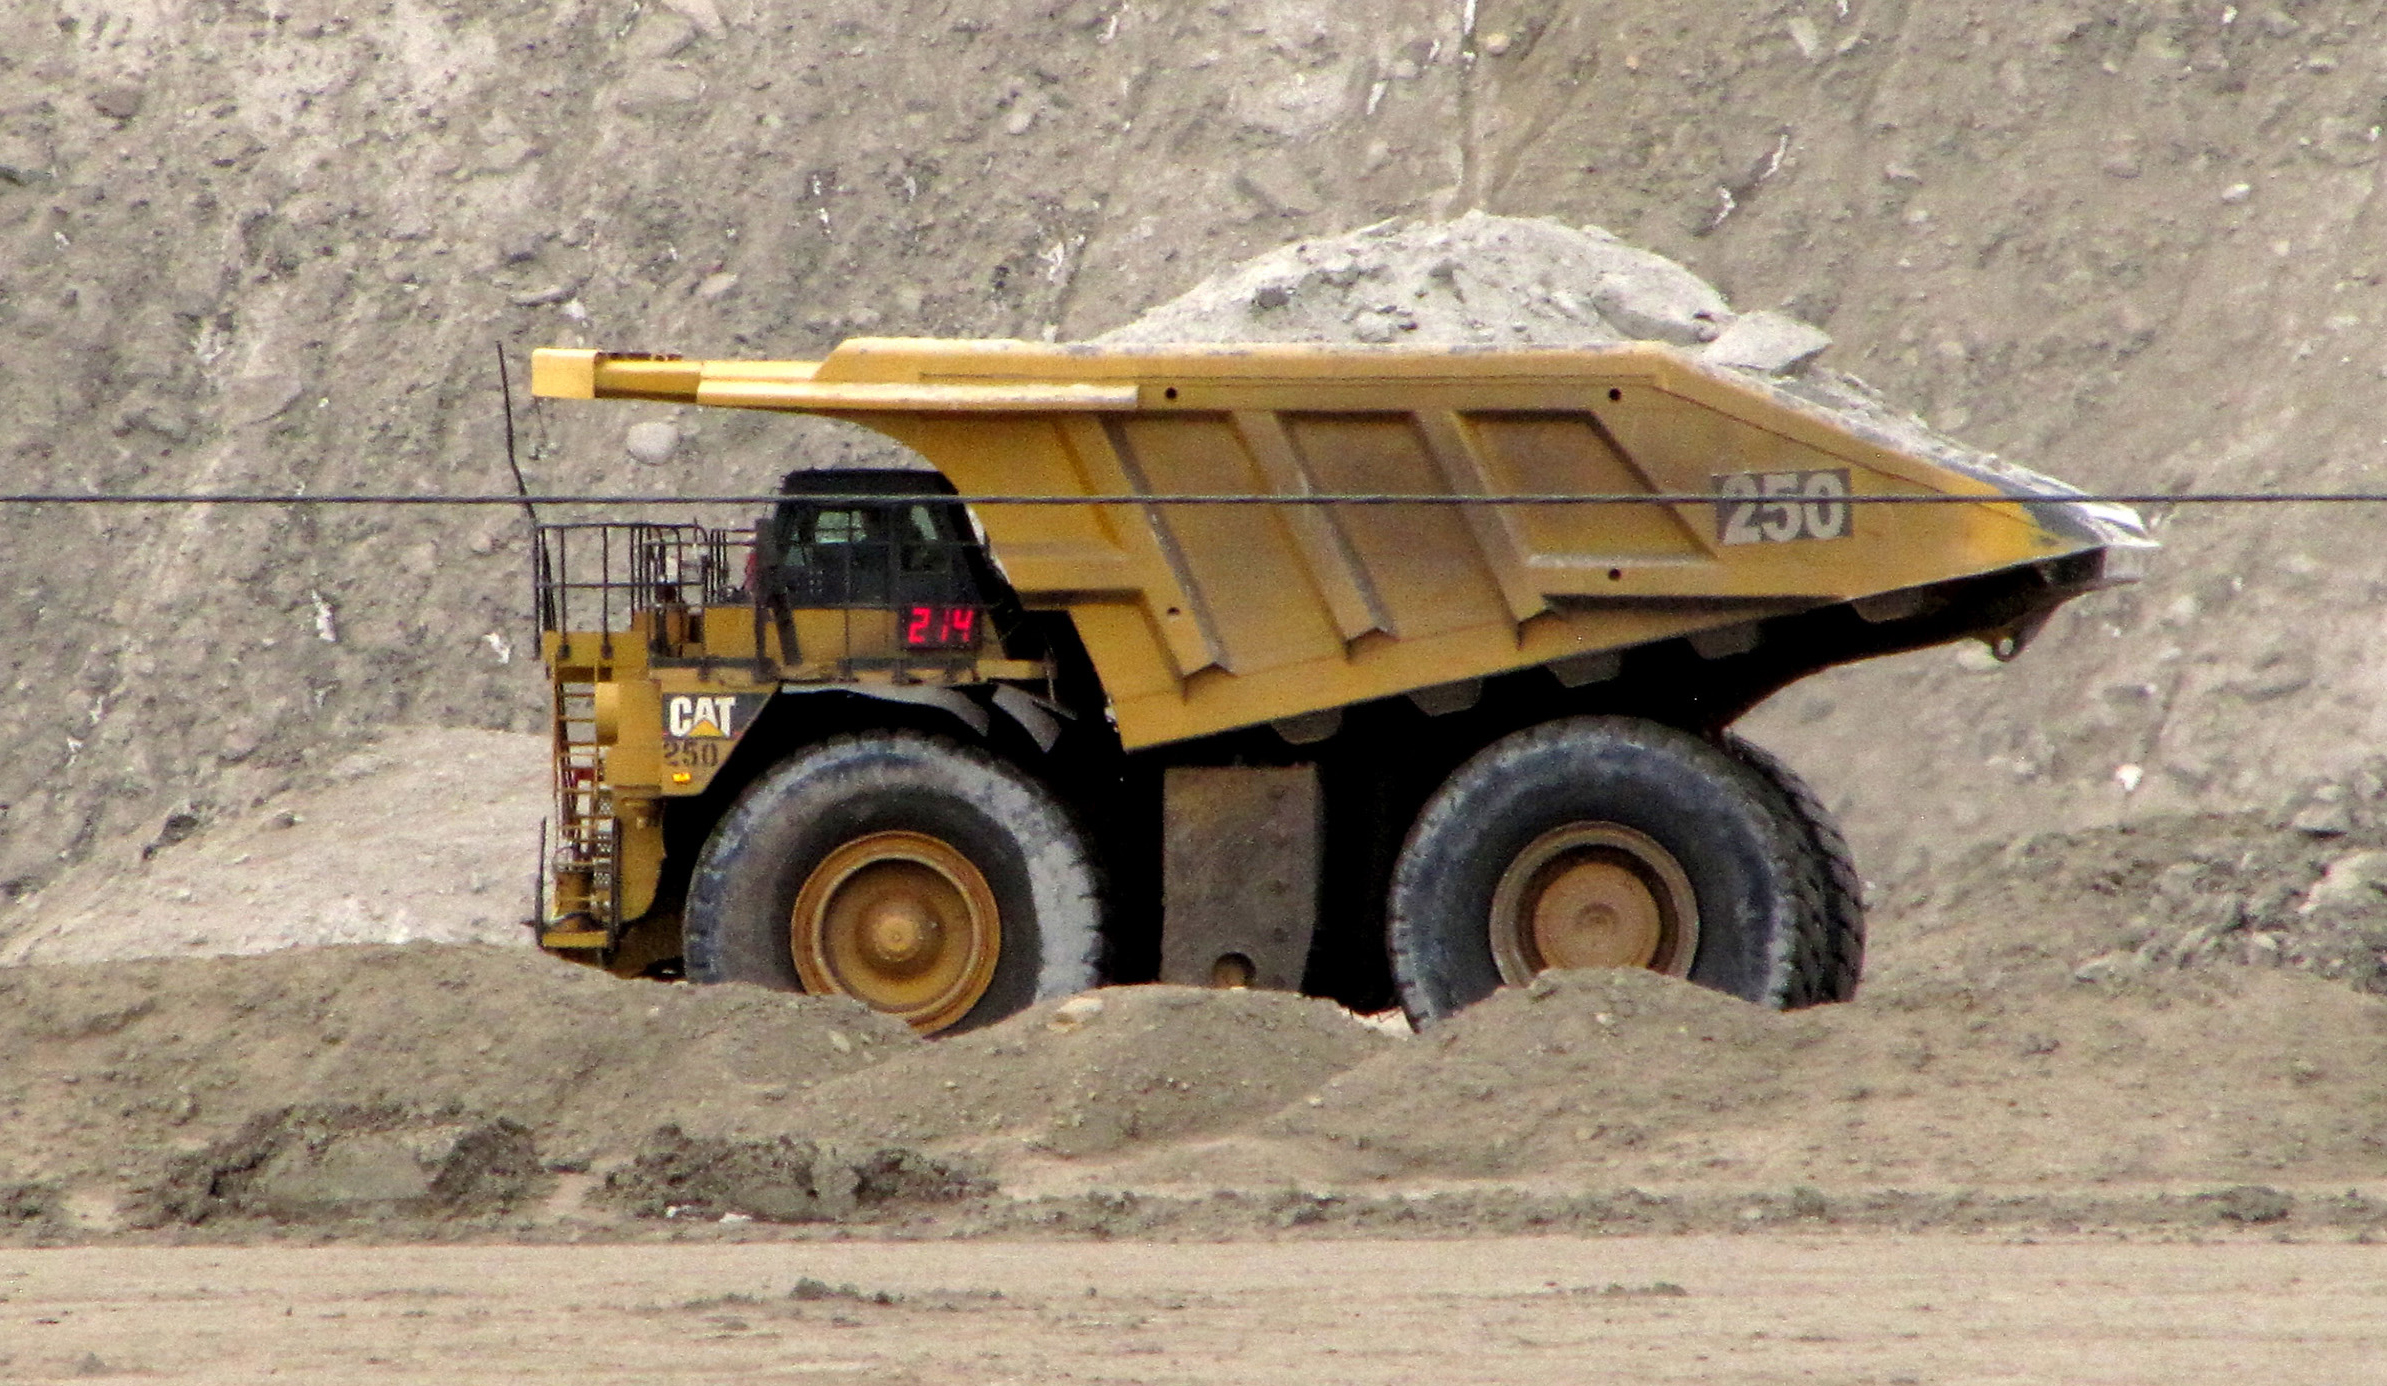 A house-sized dump truck at the Black Thunder coal mine in the Powder River Basin near Wright, Wyoming, on March 26, 2013.